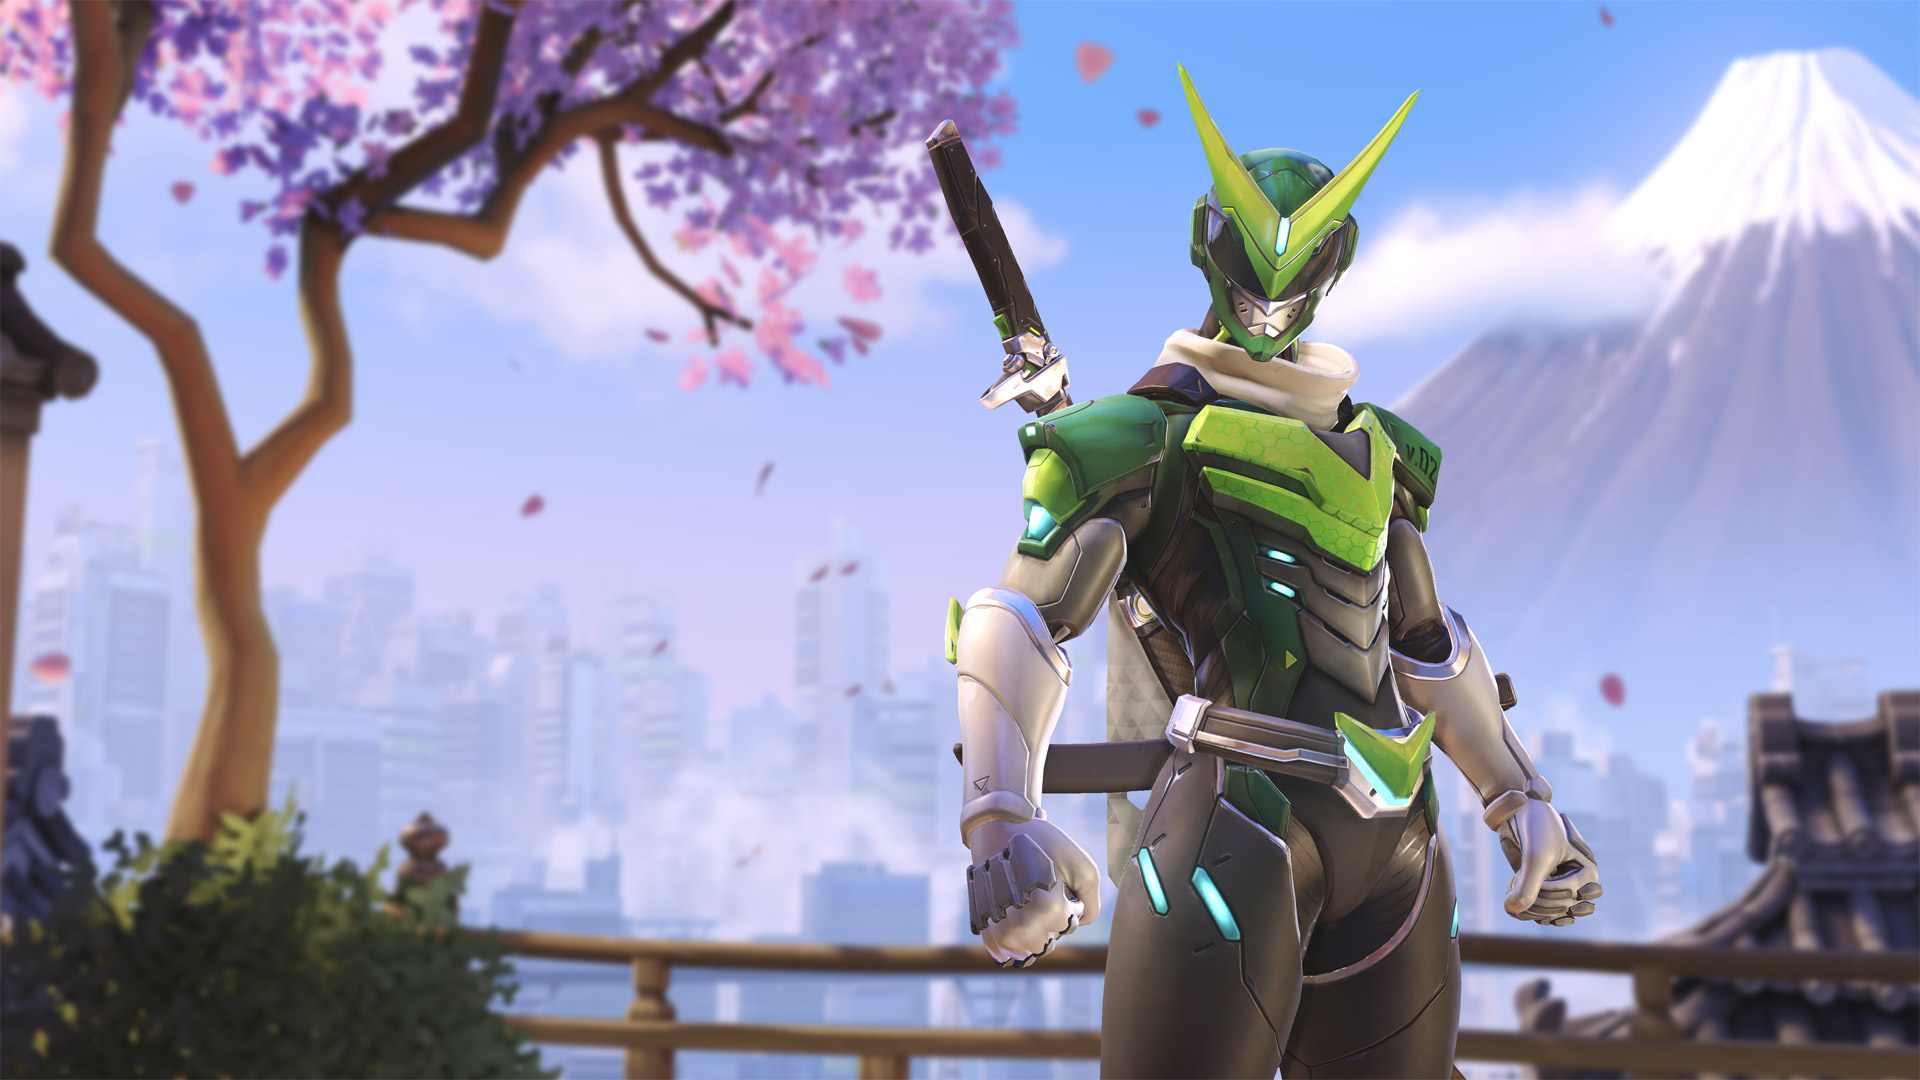 Overwatch Genji Skin Wallpaper Wide Is Cool Wallpapers